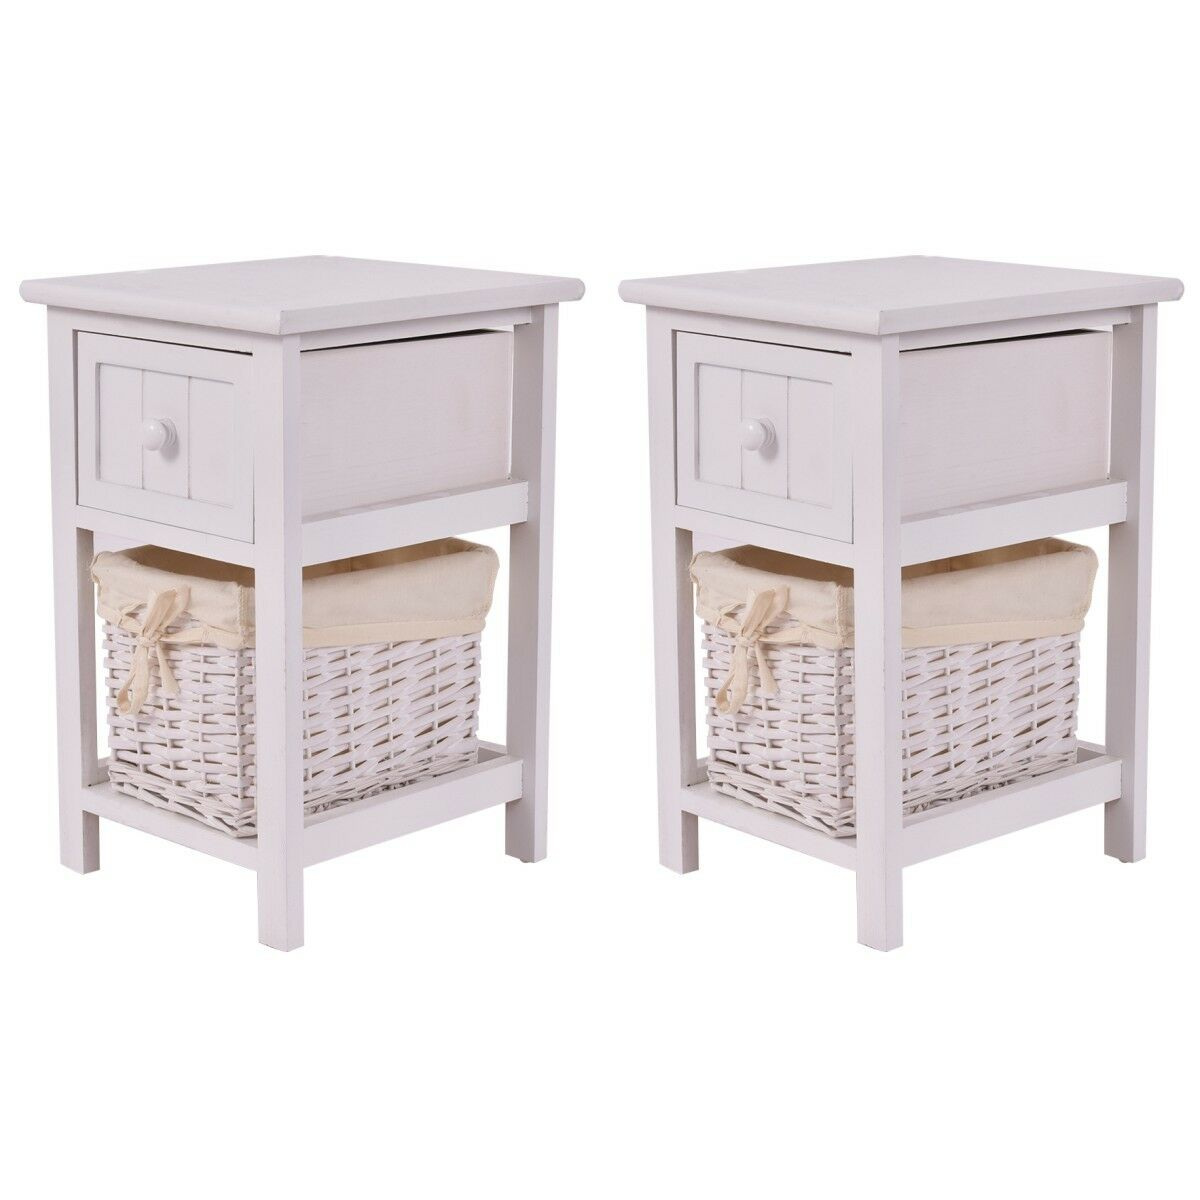 Costway Set Of 2 Mini Night Stand 2 Layer 1 Drawer Bedside End Table Organizer Wood W/Basket